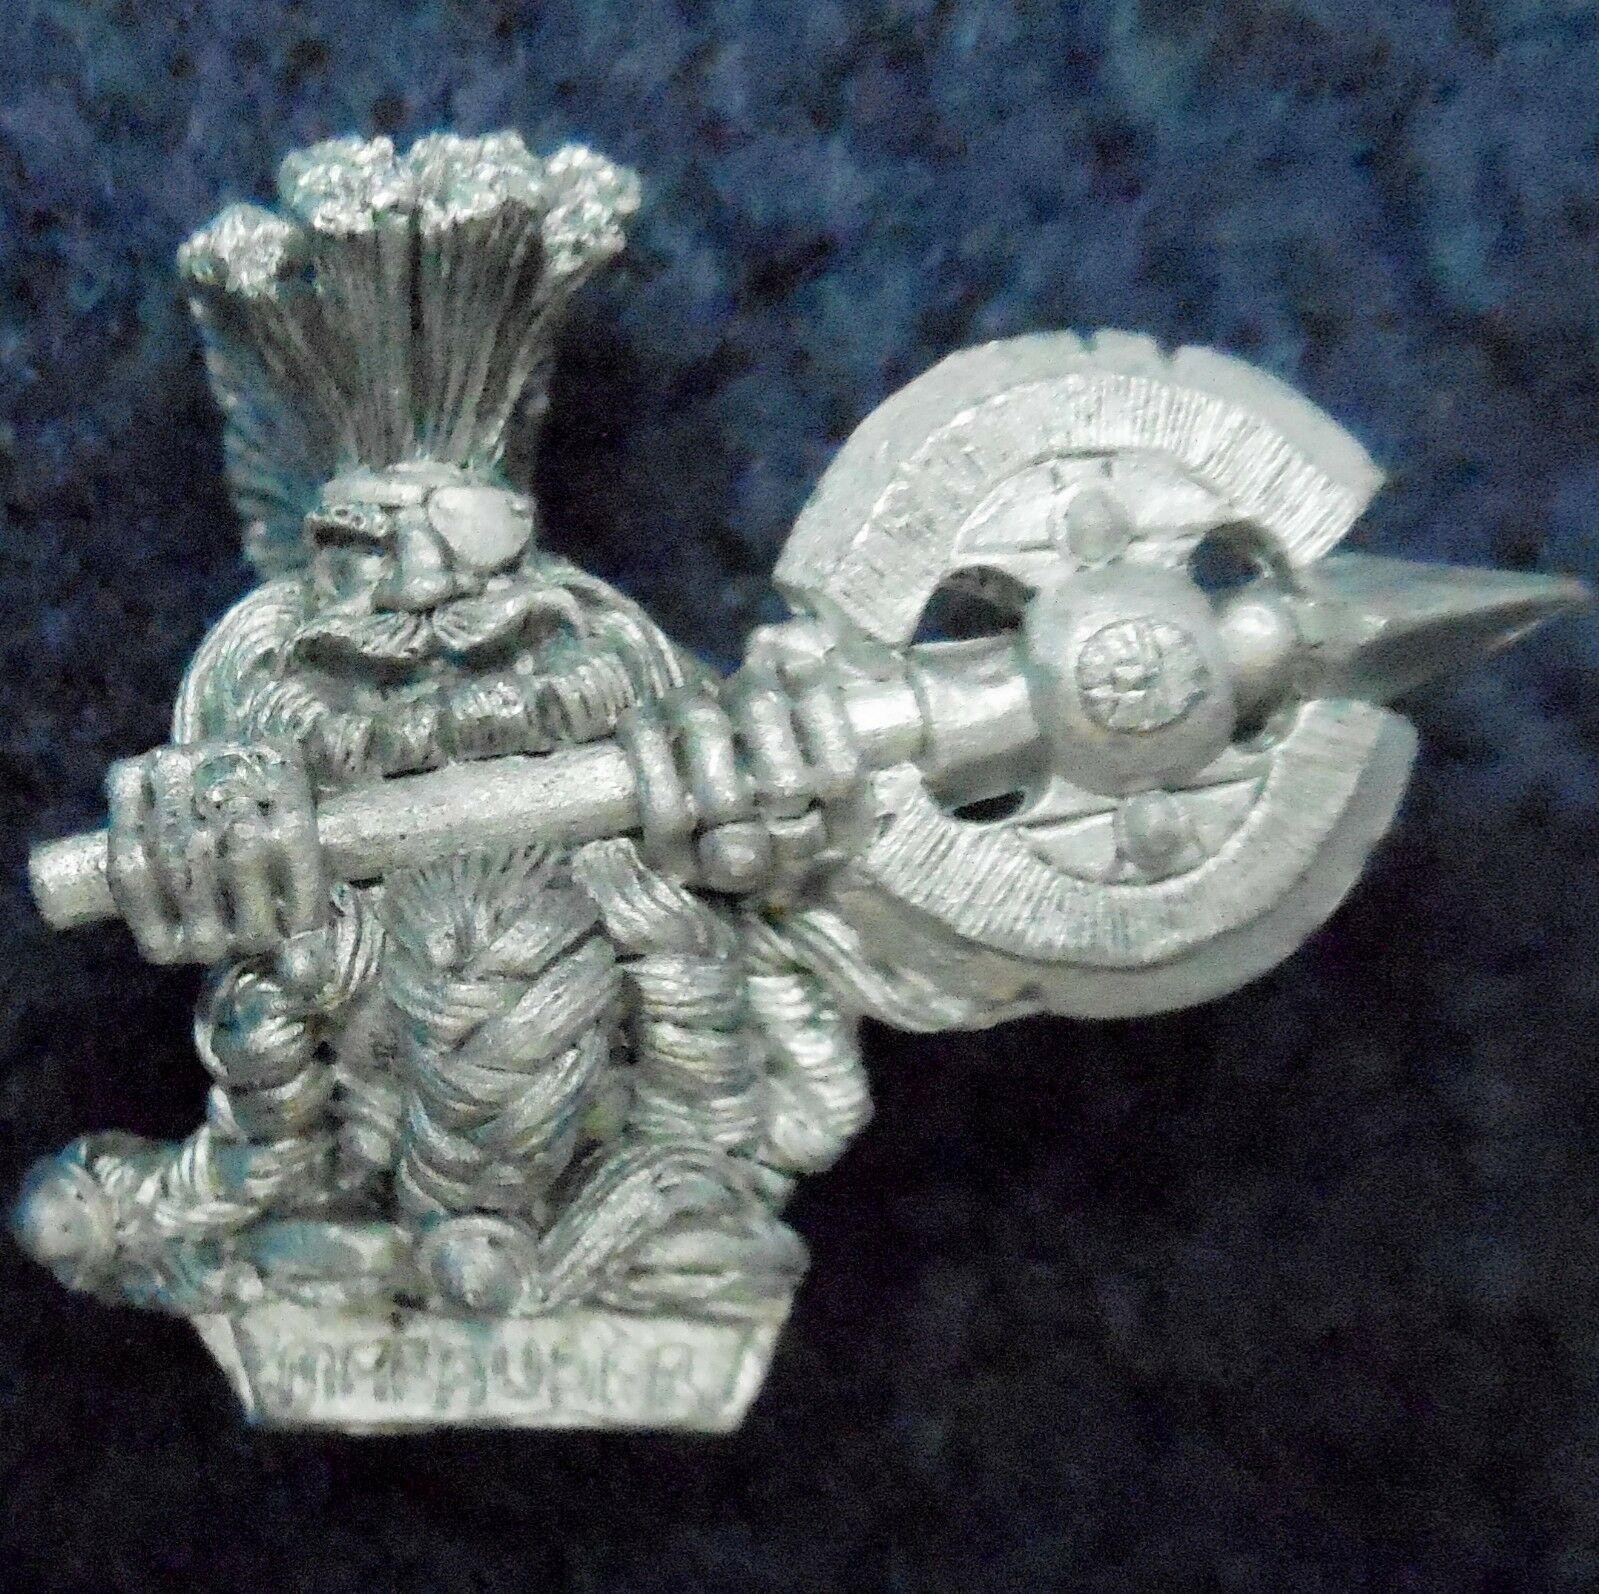 1993 Marauder Dwarf Daemon Slayer 2 Games Workshop Lord Warhammer Army Demon D&D